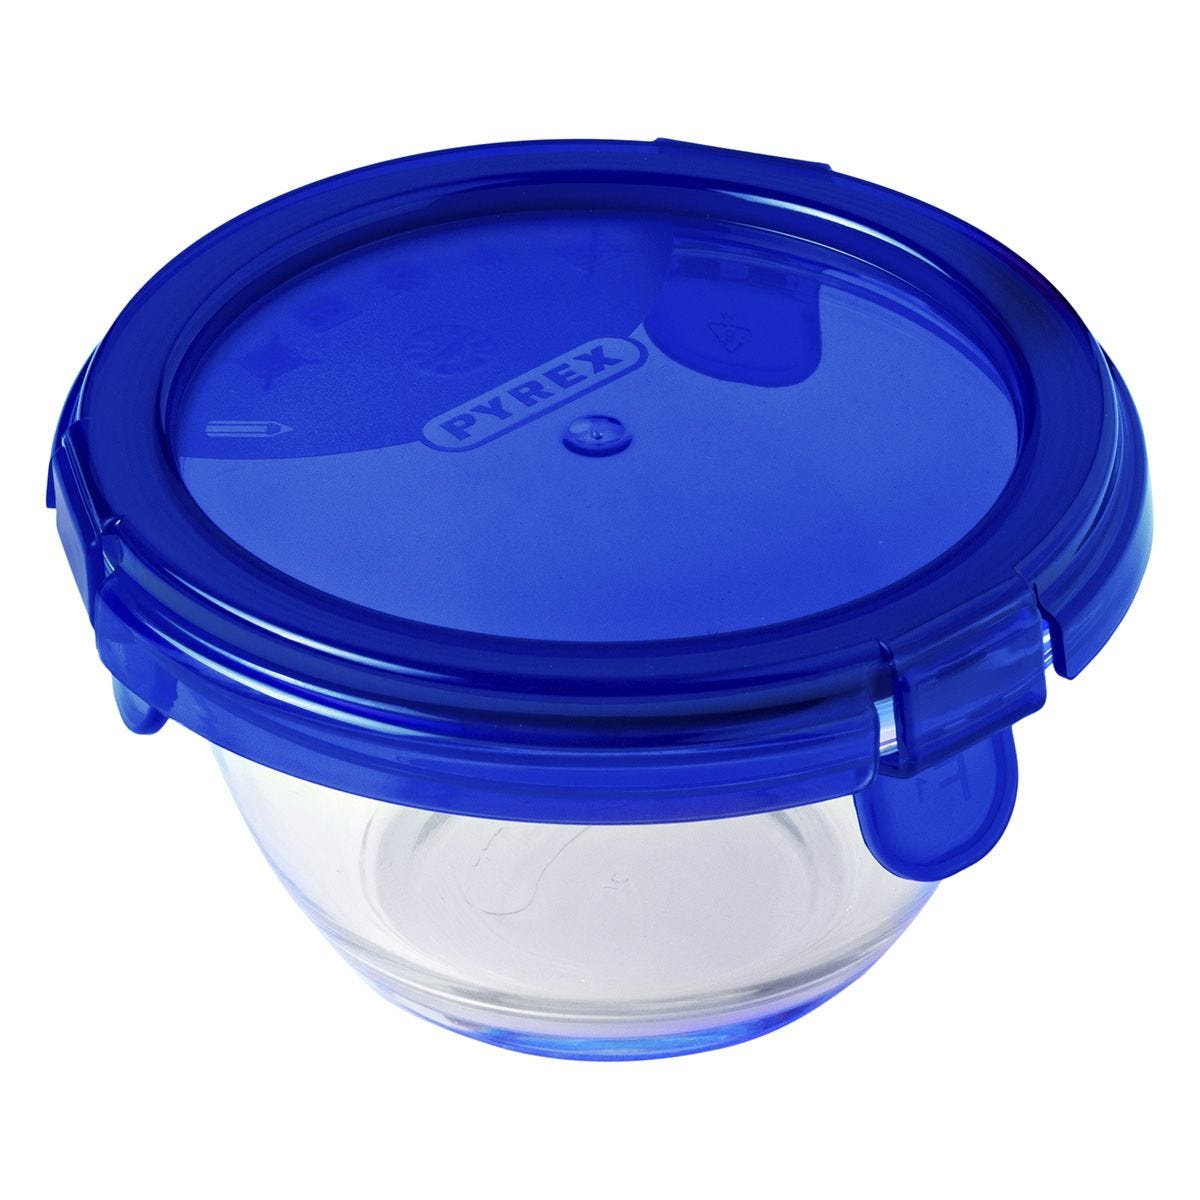 Pyrex Cook & Go Round Dish W/Lid